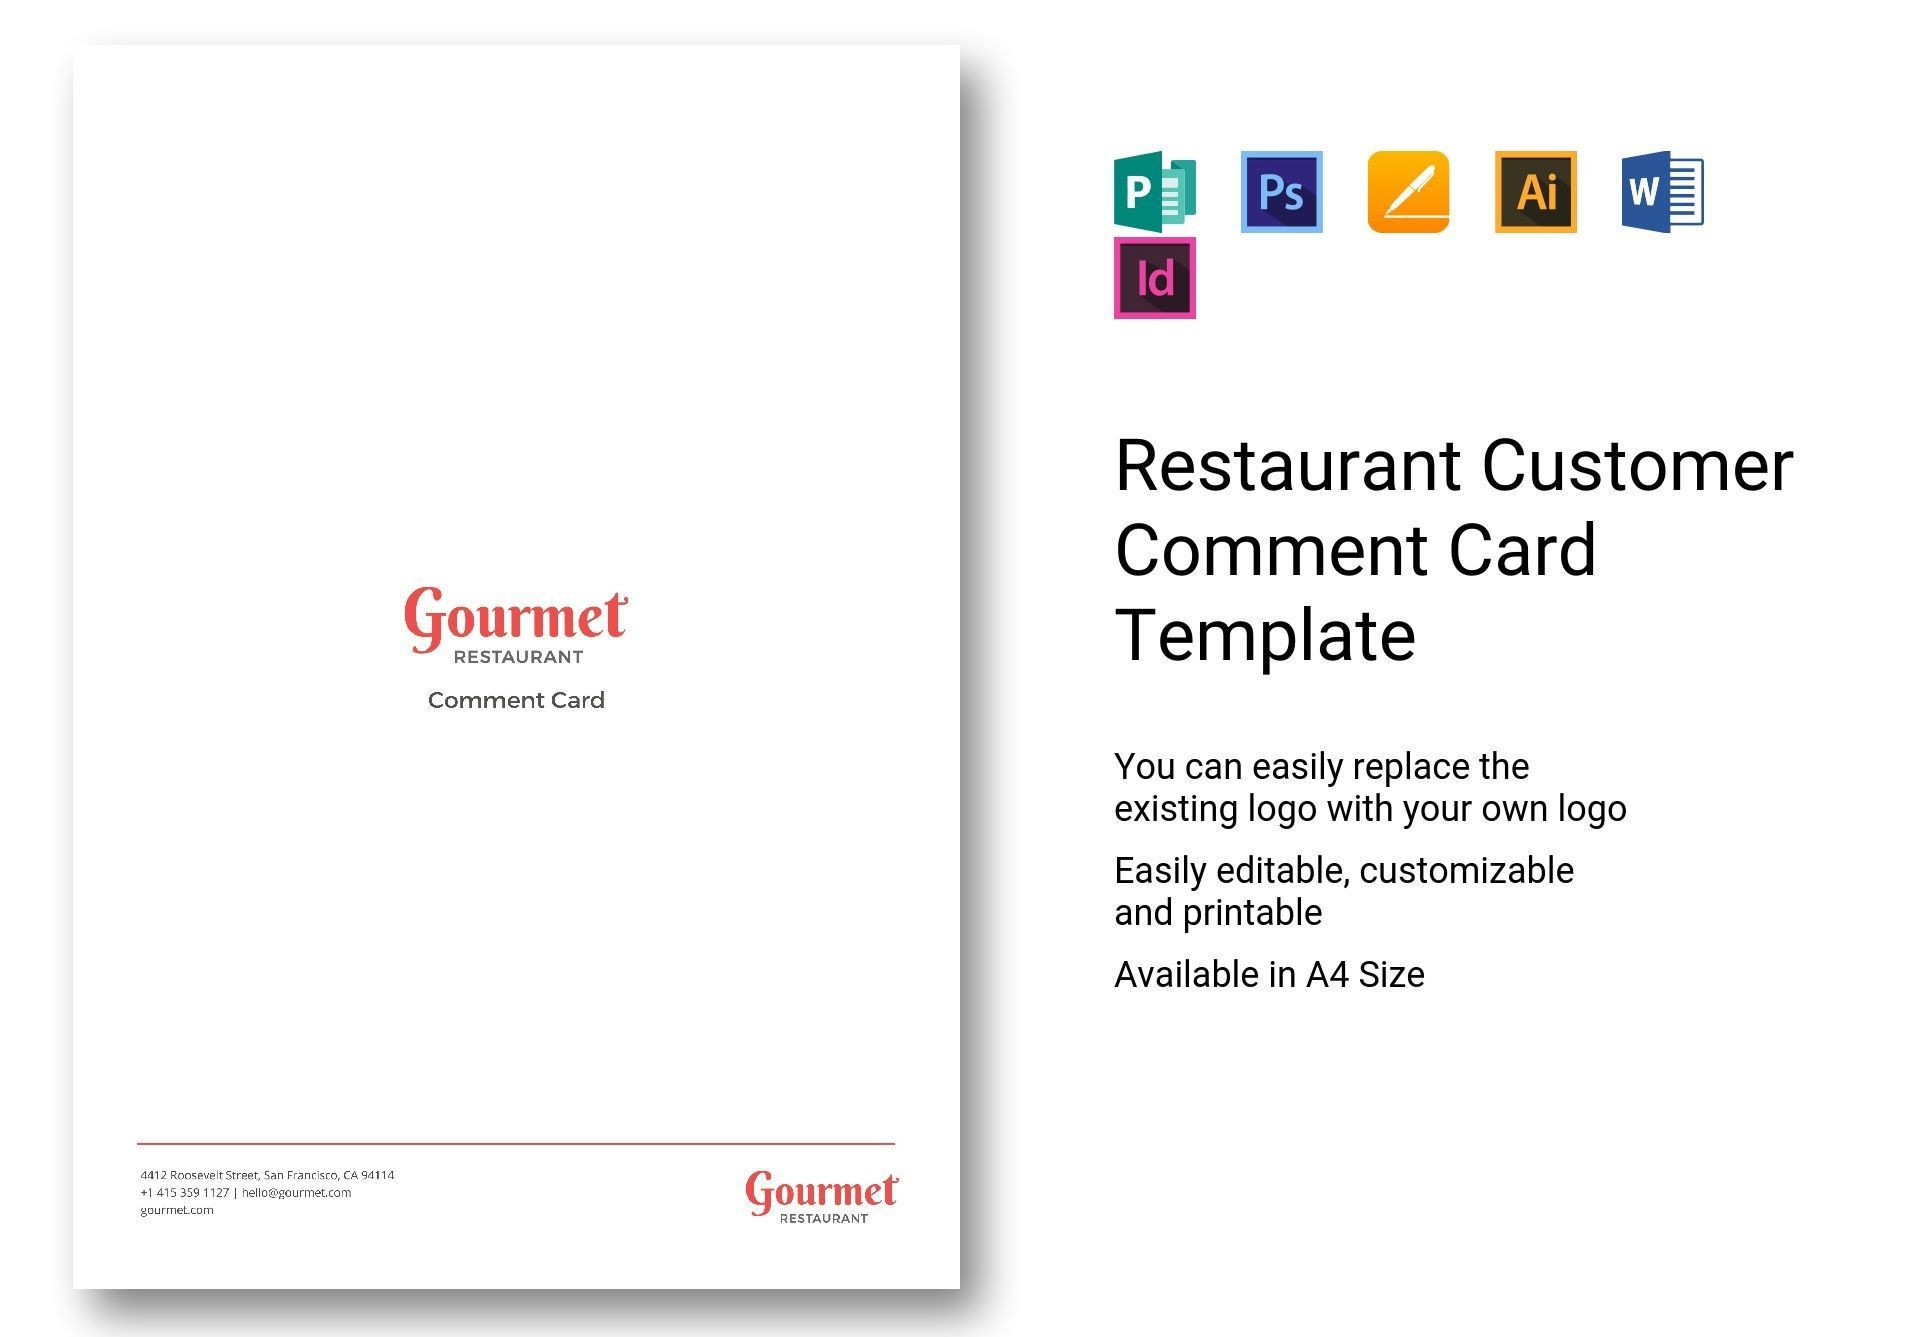 002 Unusual Restaurant Comment Card Template For Word Image 1920